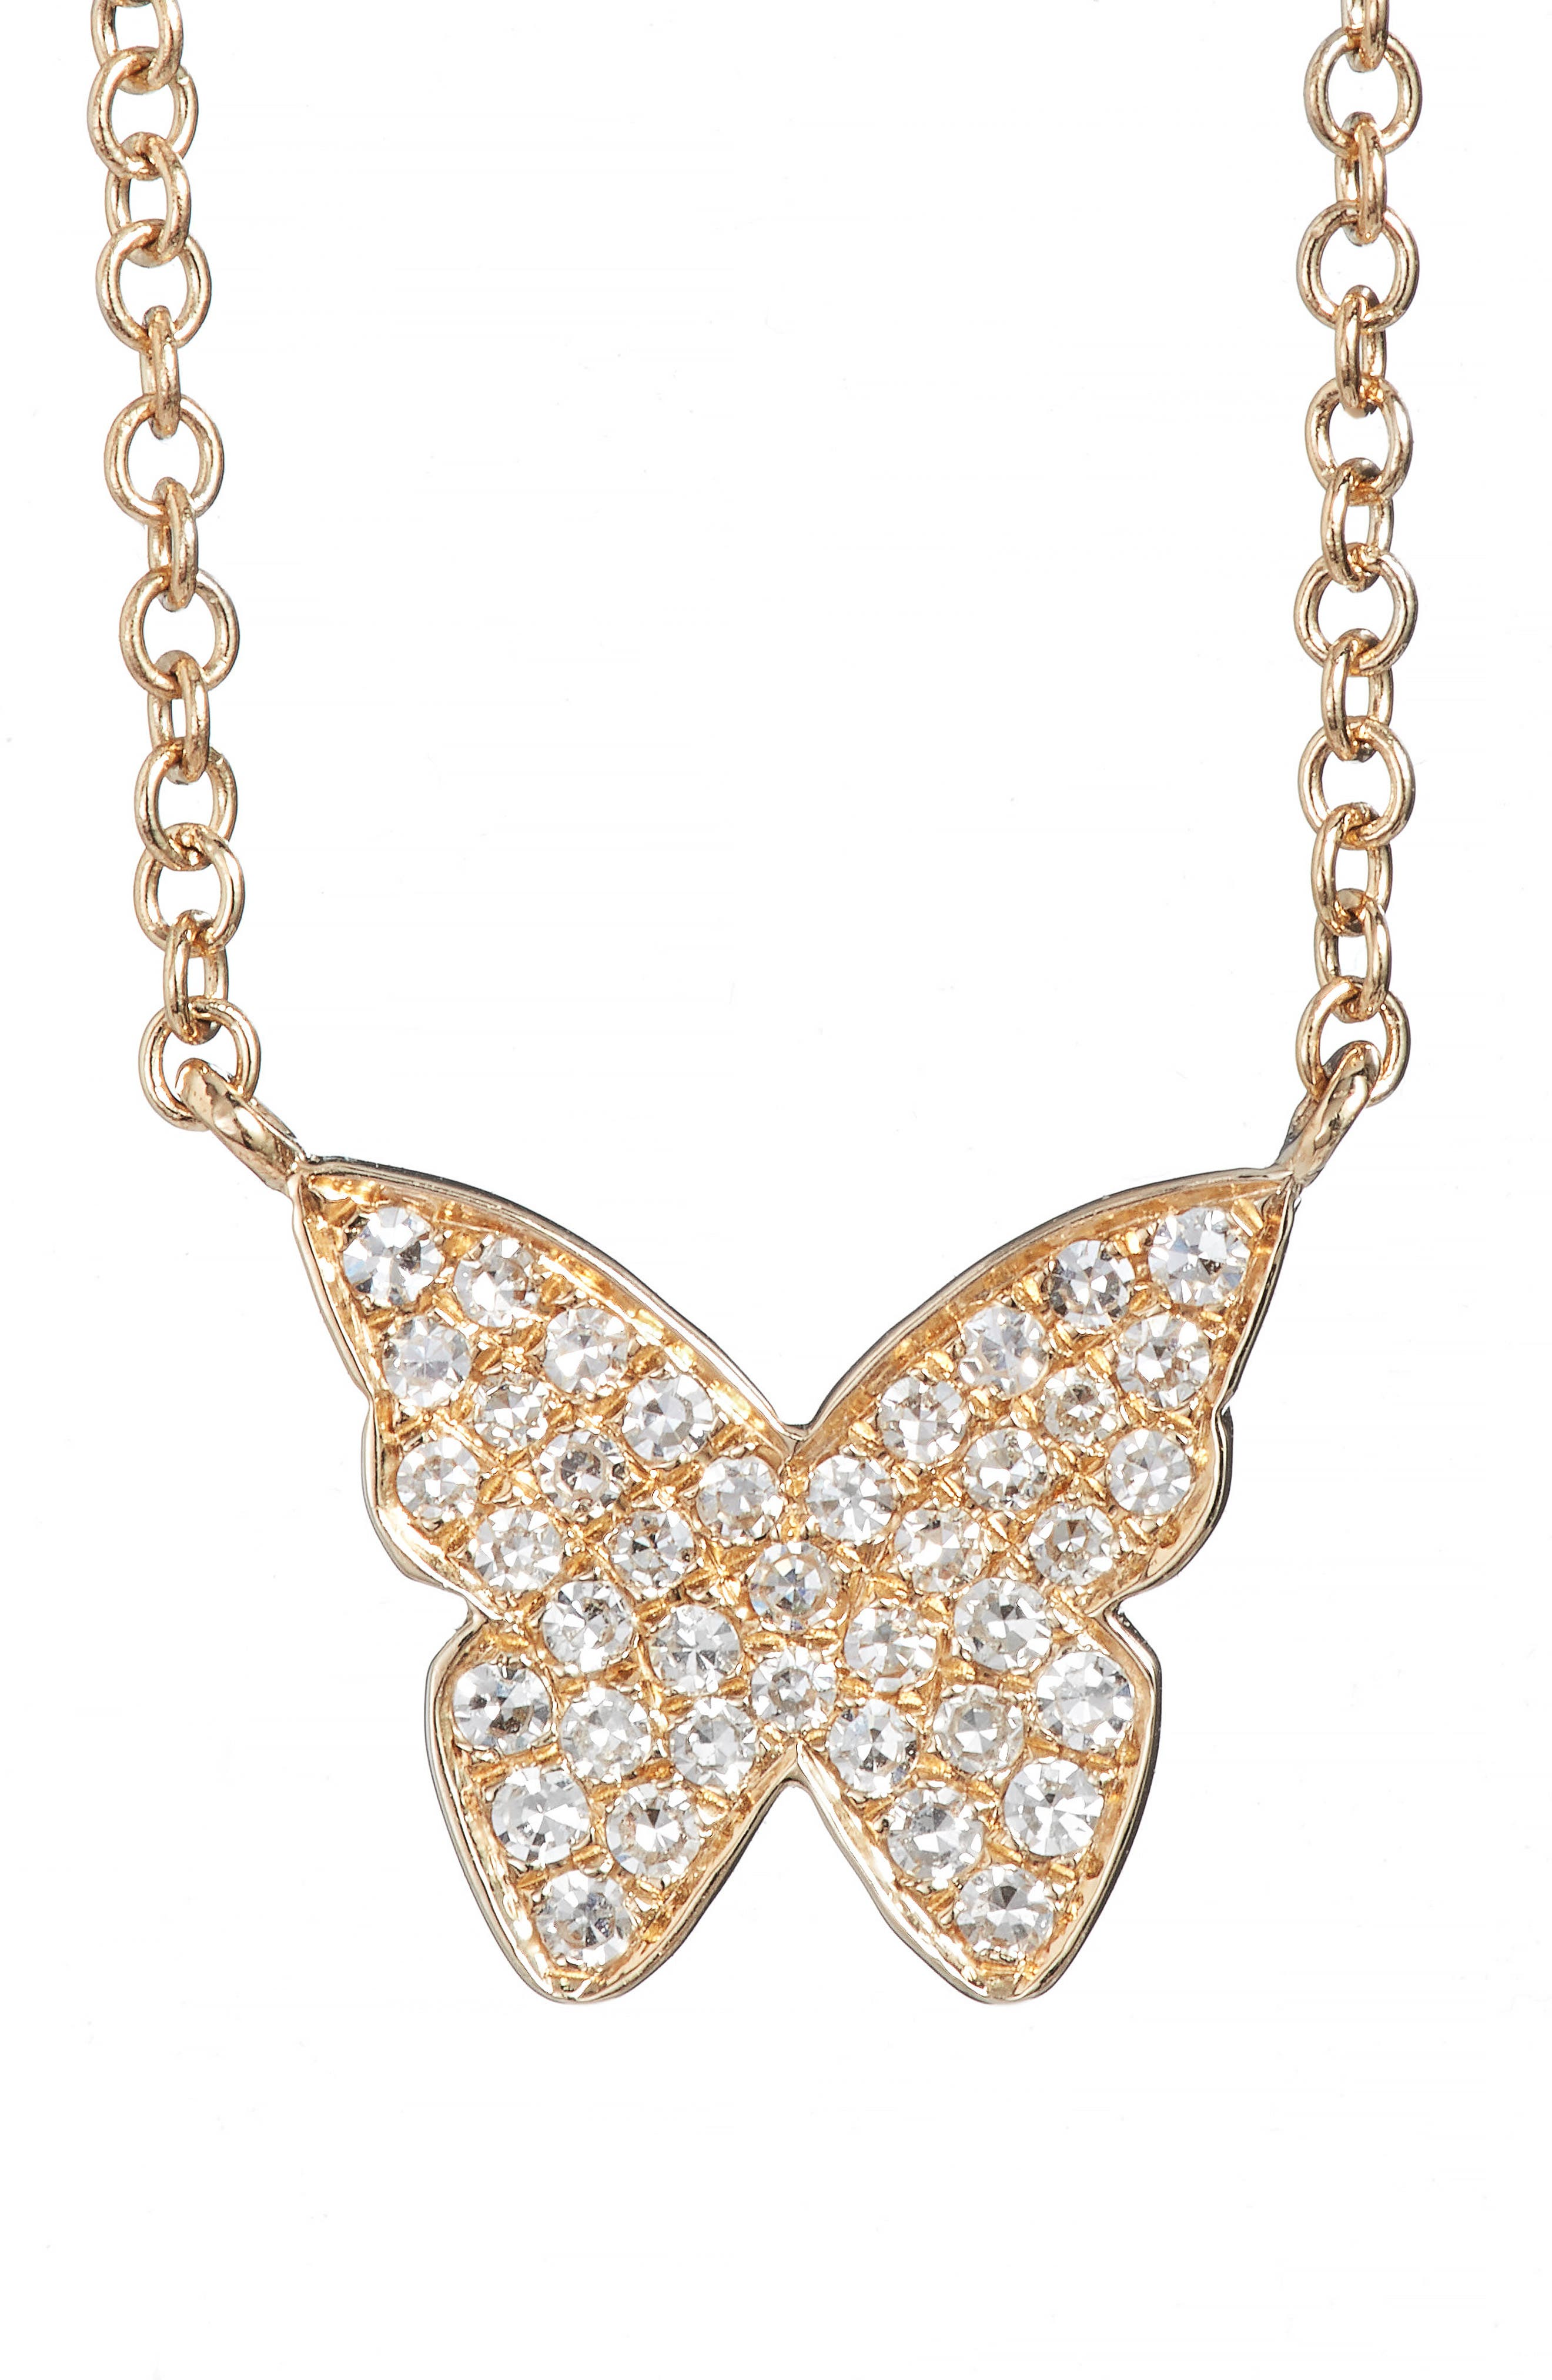 Diamond Butterfly Pendant Necklace,                             Main thumbnail 1, color,                             YELLOW GOLD